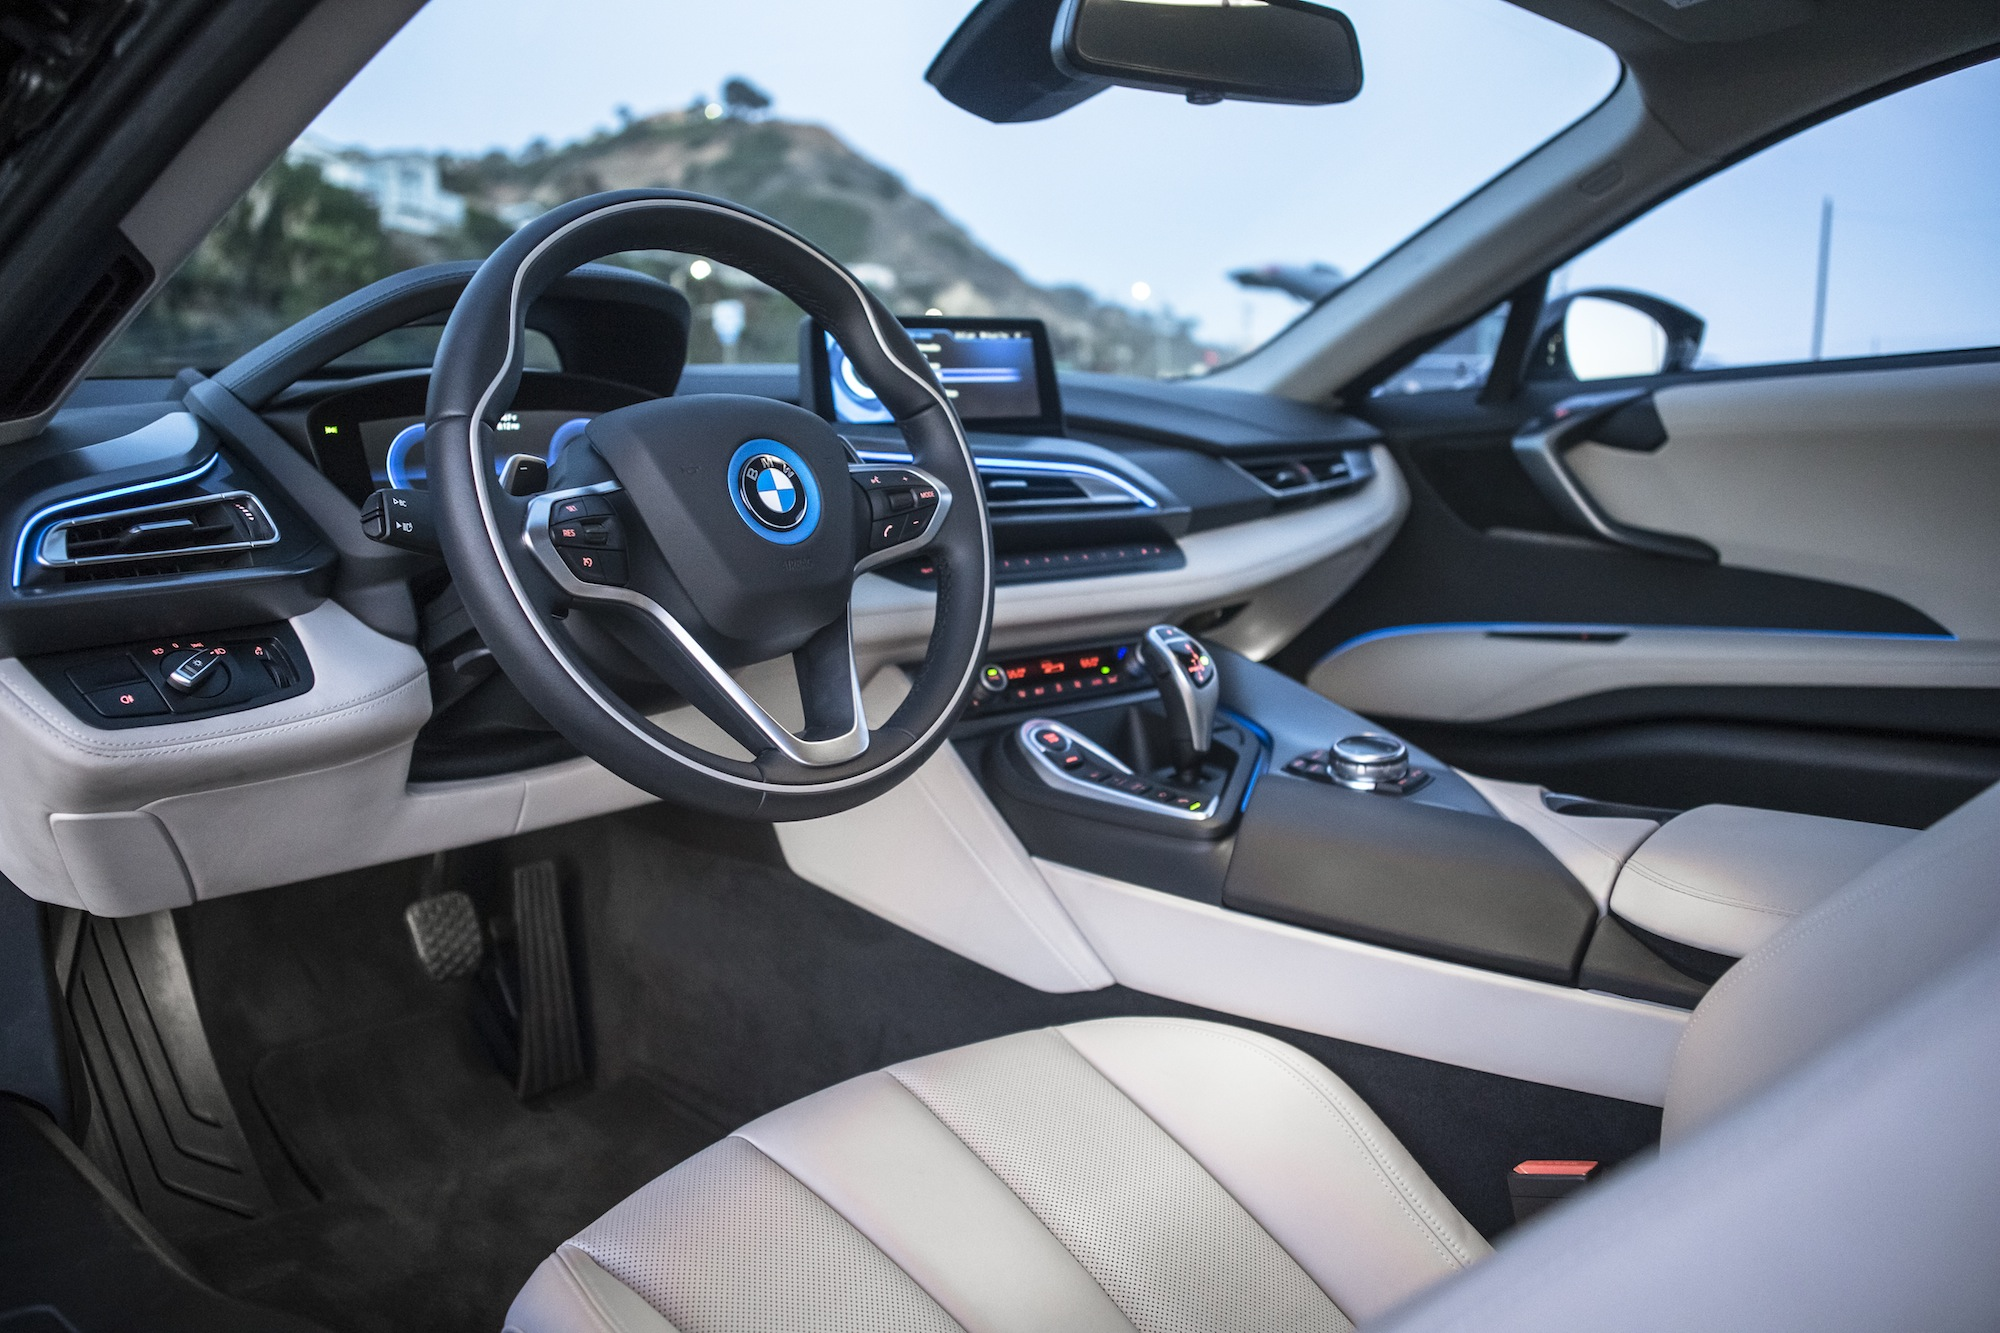 Next Gen Bmw I8 May Arrive In 2023 With 300 Mile Range Autoguide